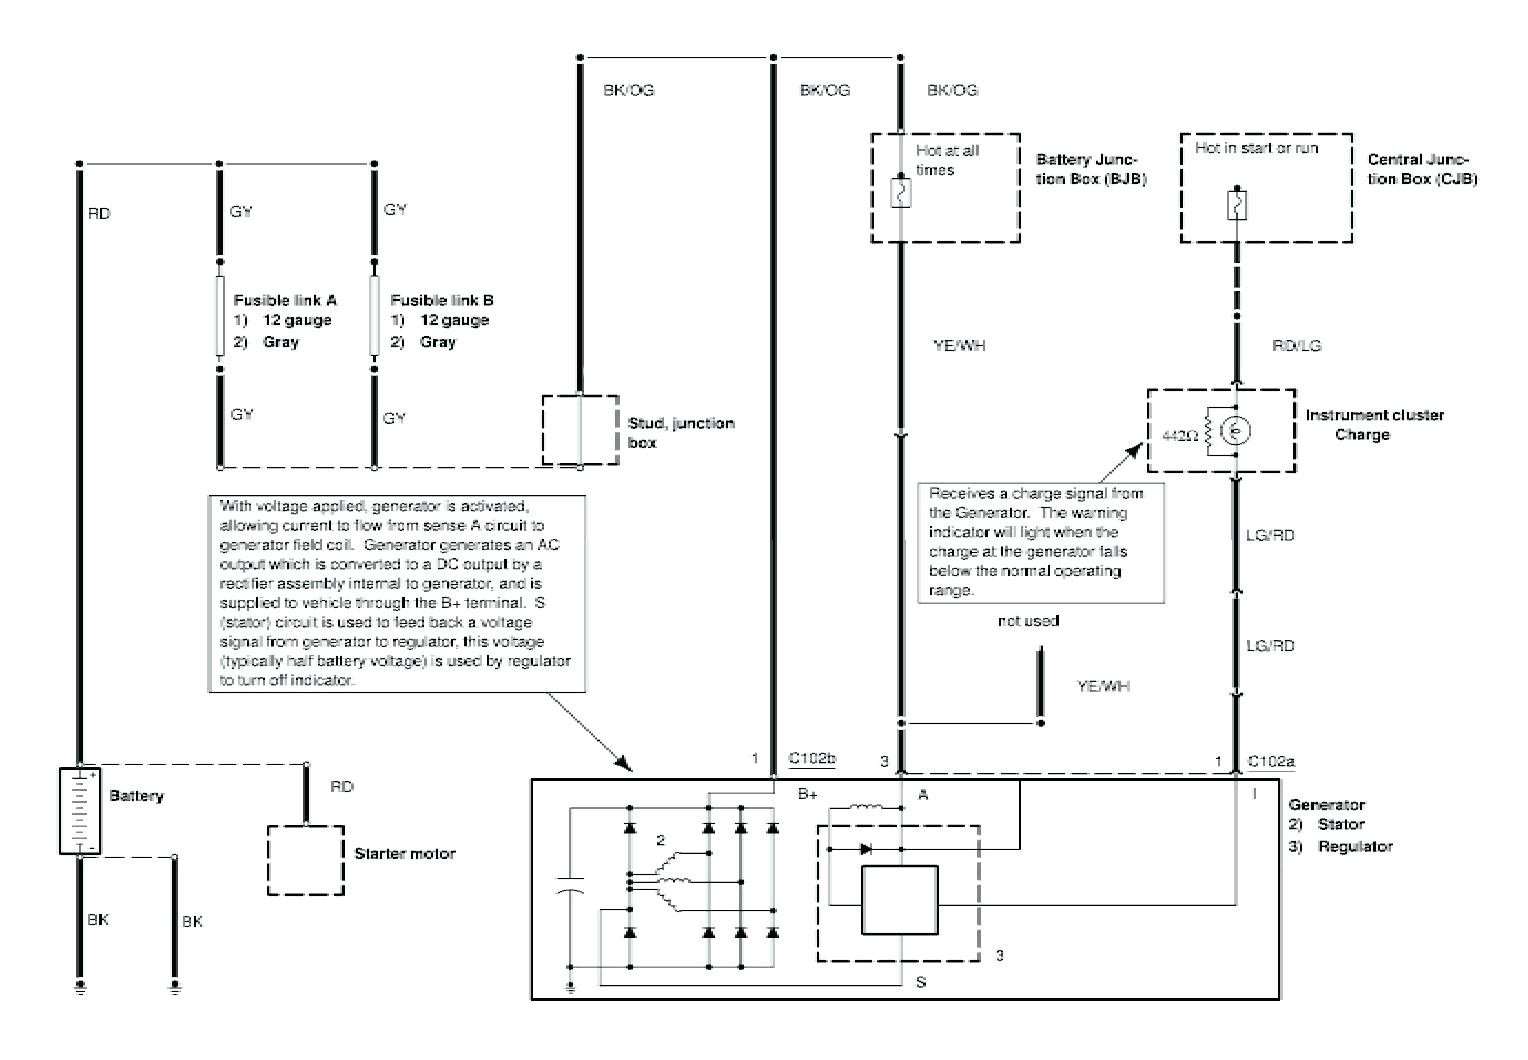 Full Size of Wiring Diagram 3 Way Switch With Receptacle Ford Crown Alternator Diagrams 4 Wire